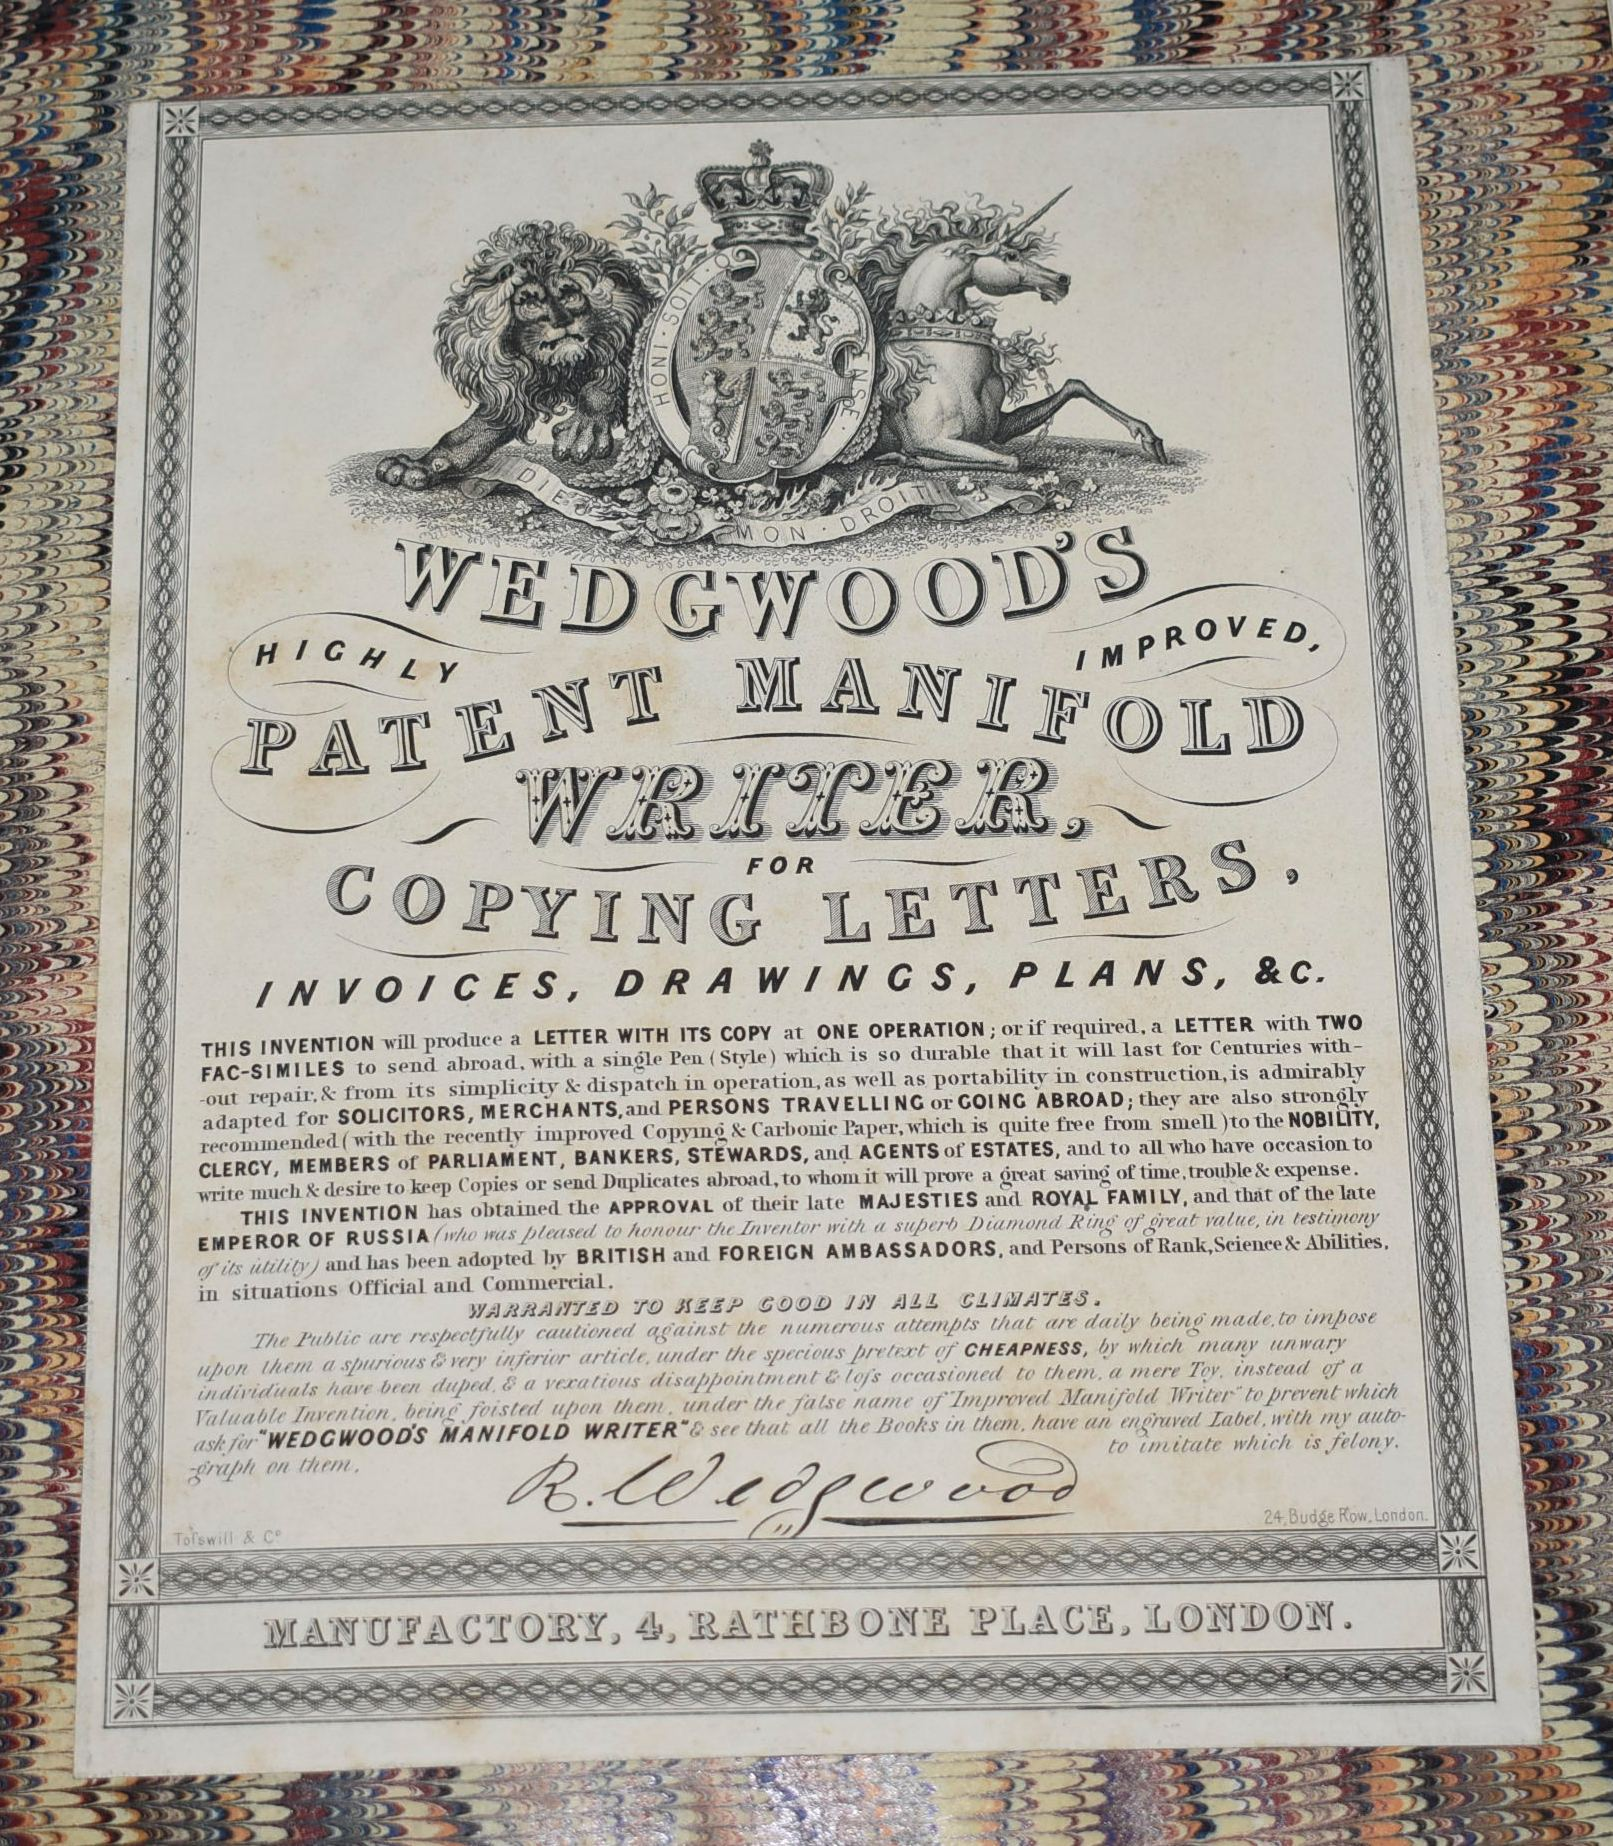 Image for Wedgwood's Patent Manifold Writer for Copying Letters, Invoices, Drawings, Plans &c.